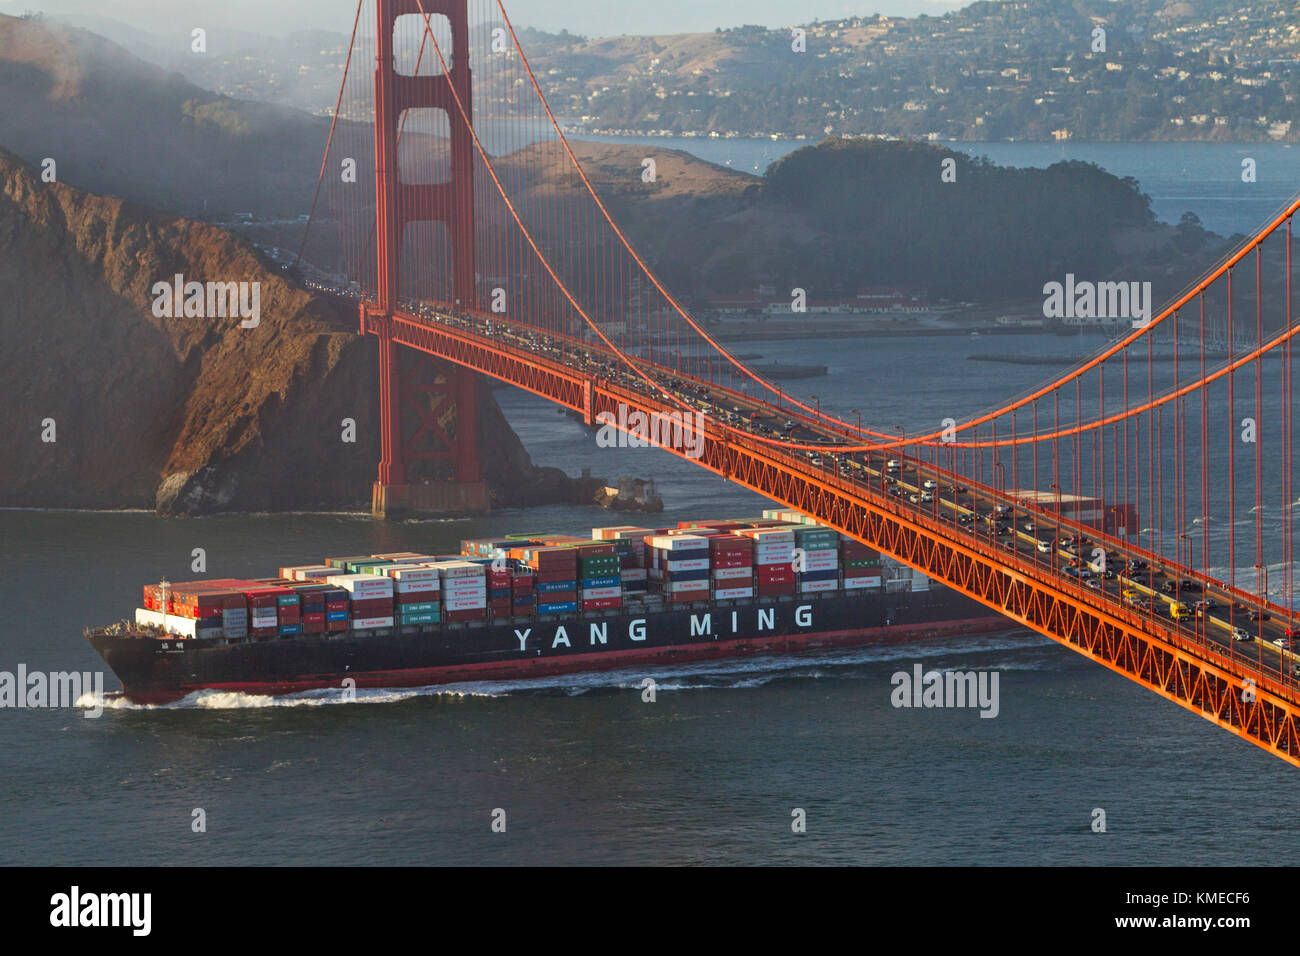 Freighter naviguant sous le golden gate bridge à San Francisco, San Francisco, California, USA Photo Stock